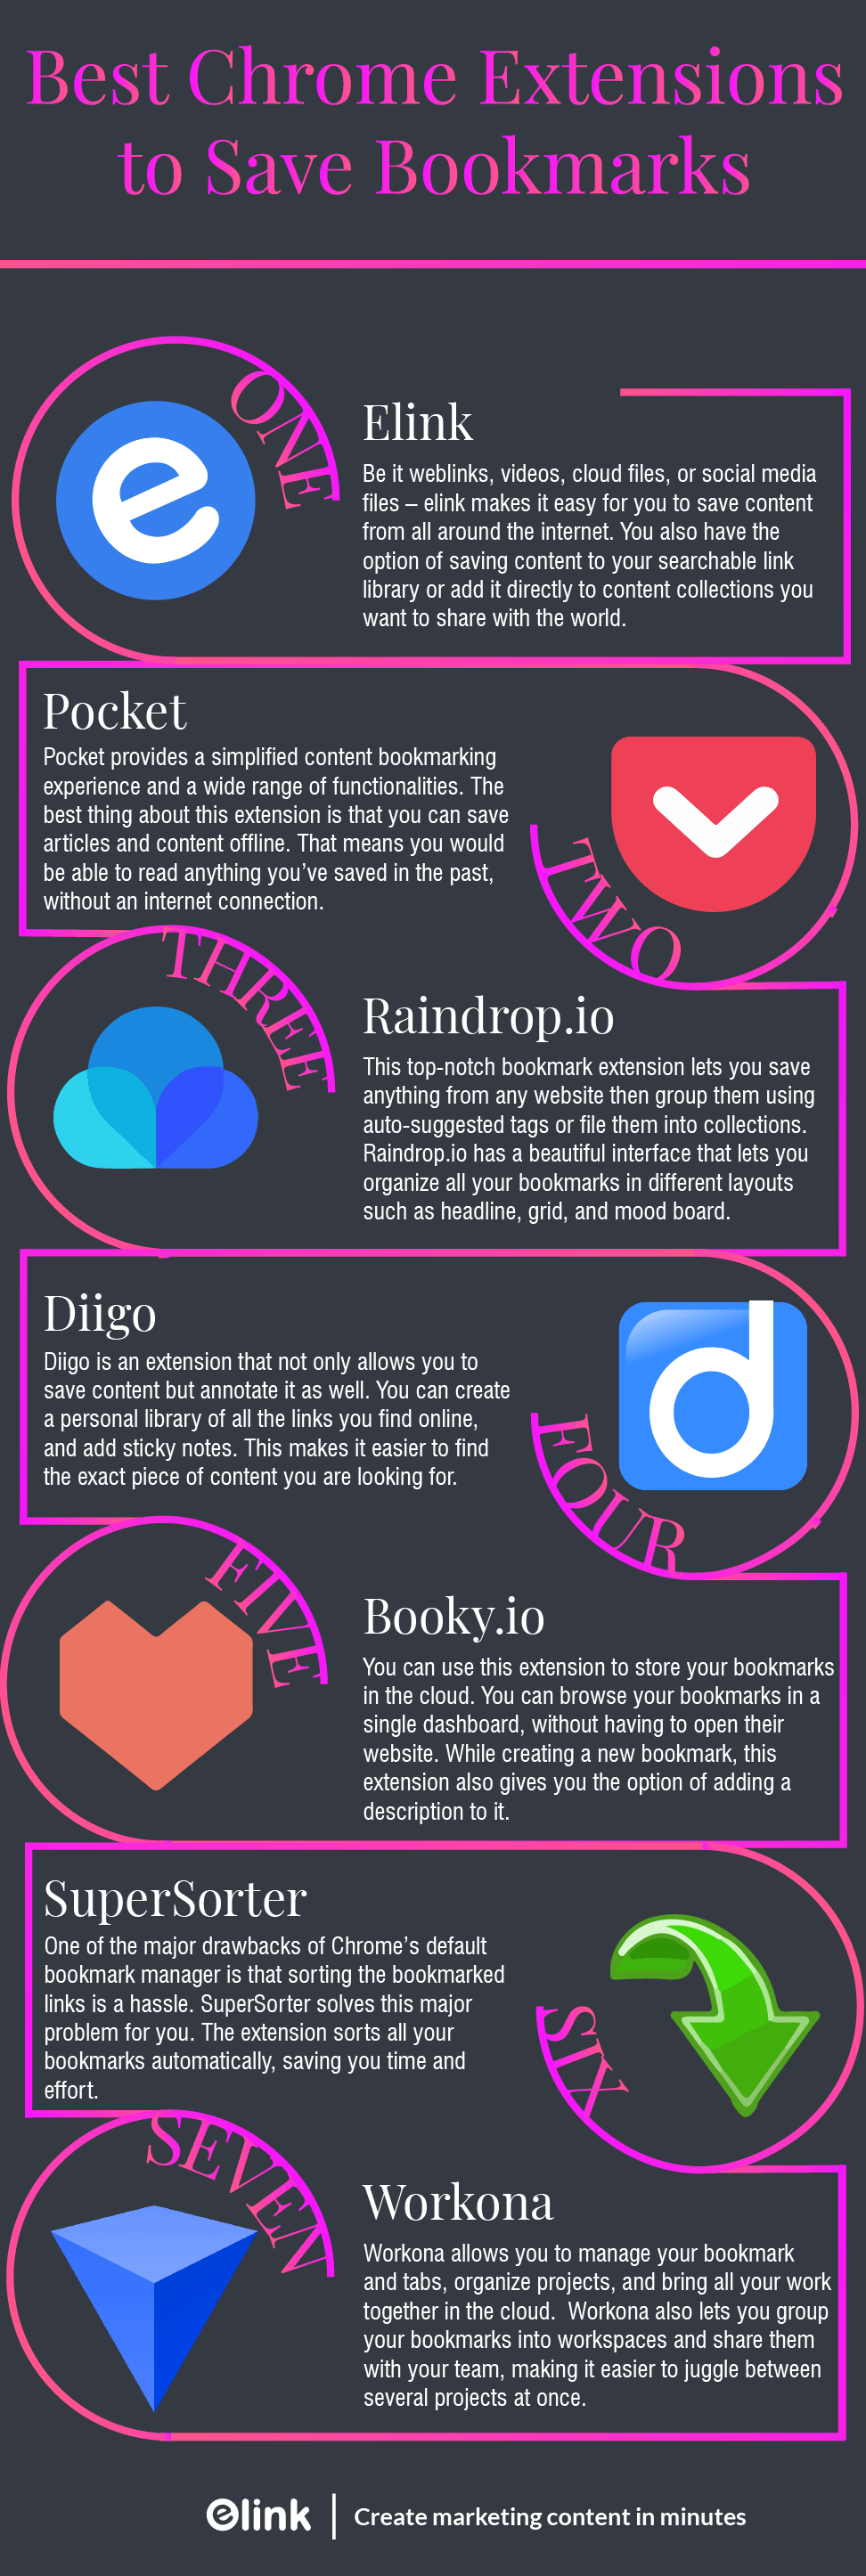 Infographic of best chrome extensions to save bookmarks